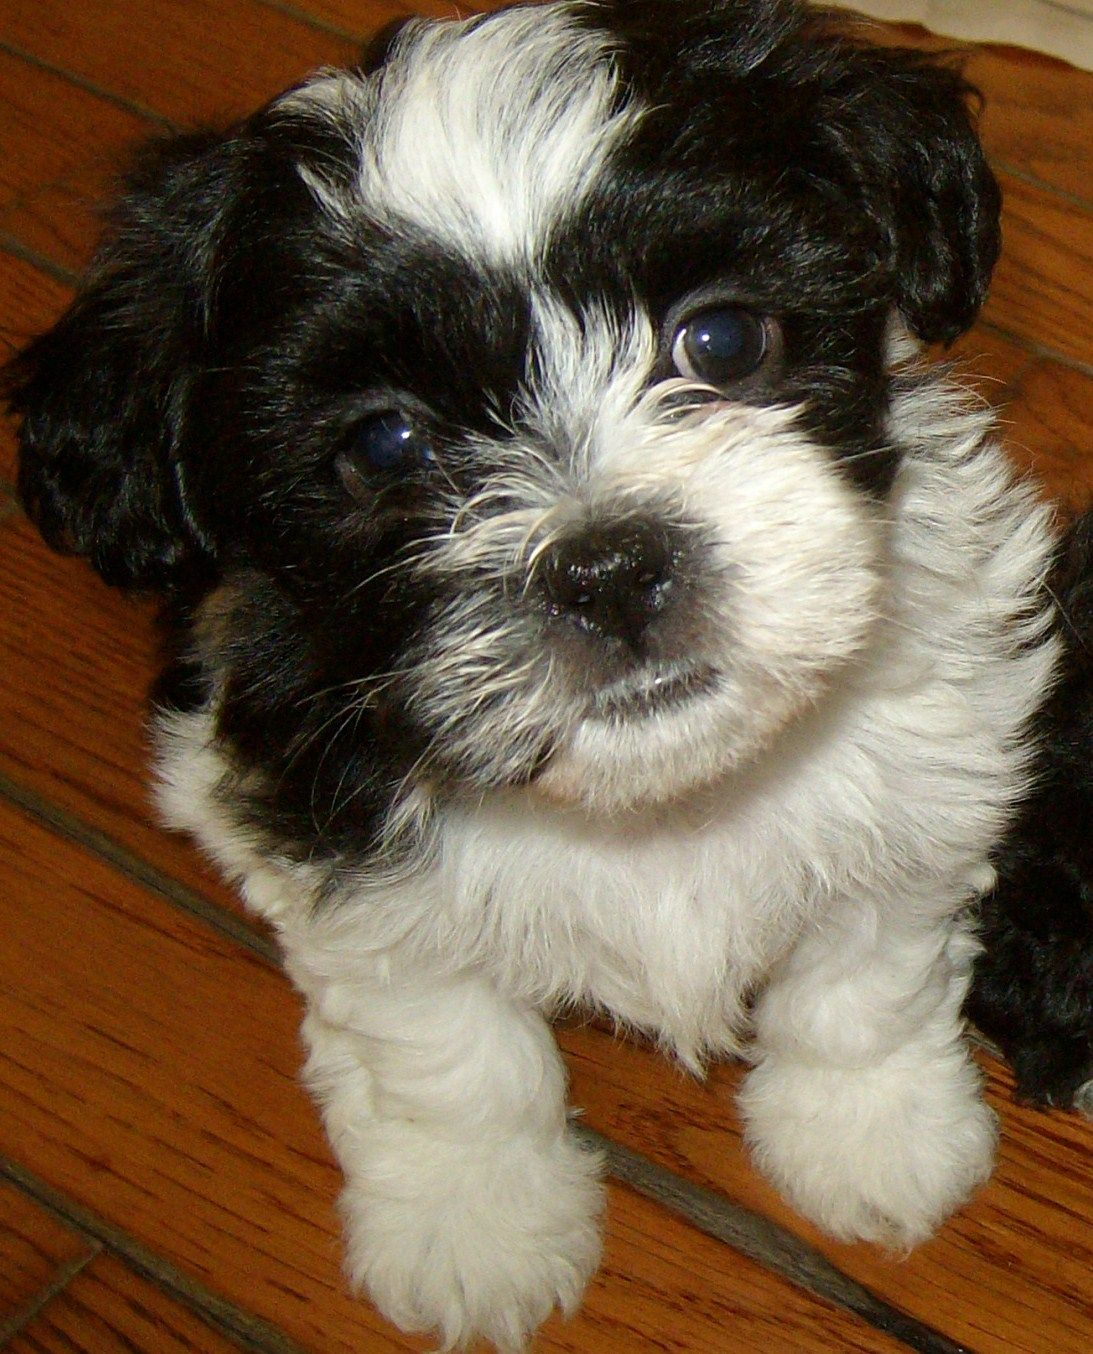 Shichon Sweet Face I Want A Black And White Brother For Elli